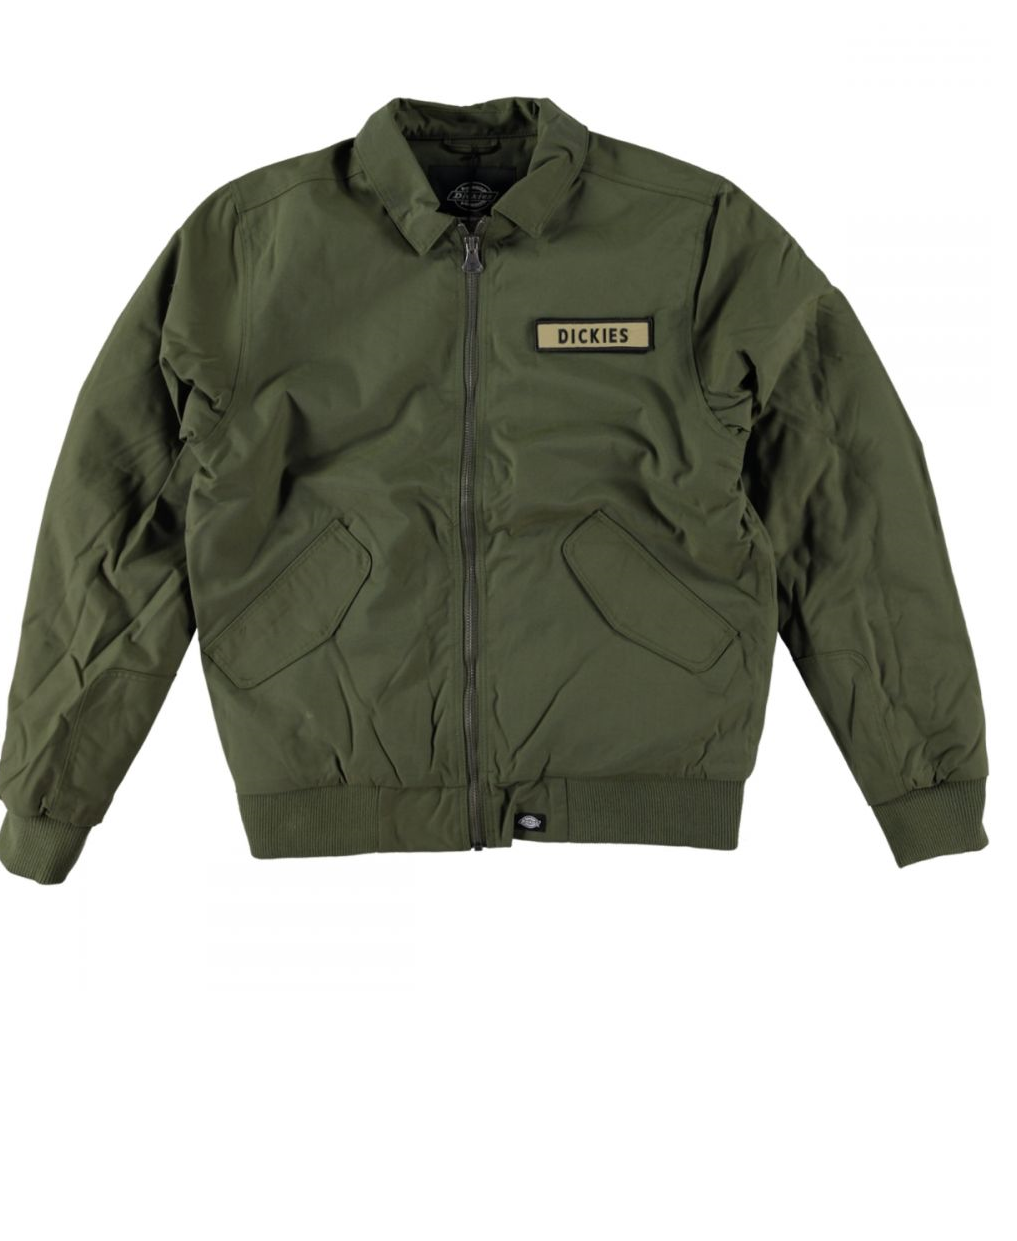 saltsburg men Products mens clothing hoodies / jackets  saltsburg puffer jacket sku: s0202015110900029 black find a store  prices may vary depending on retailer you may also like massey jacket  cortez.